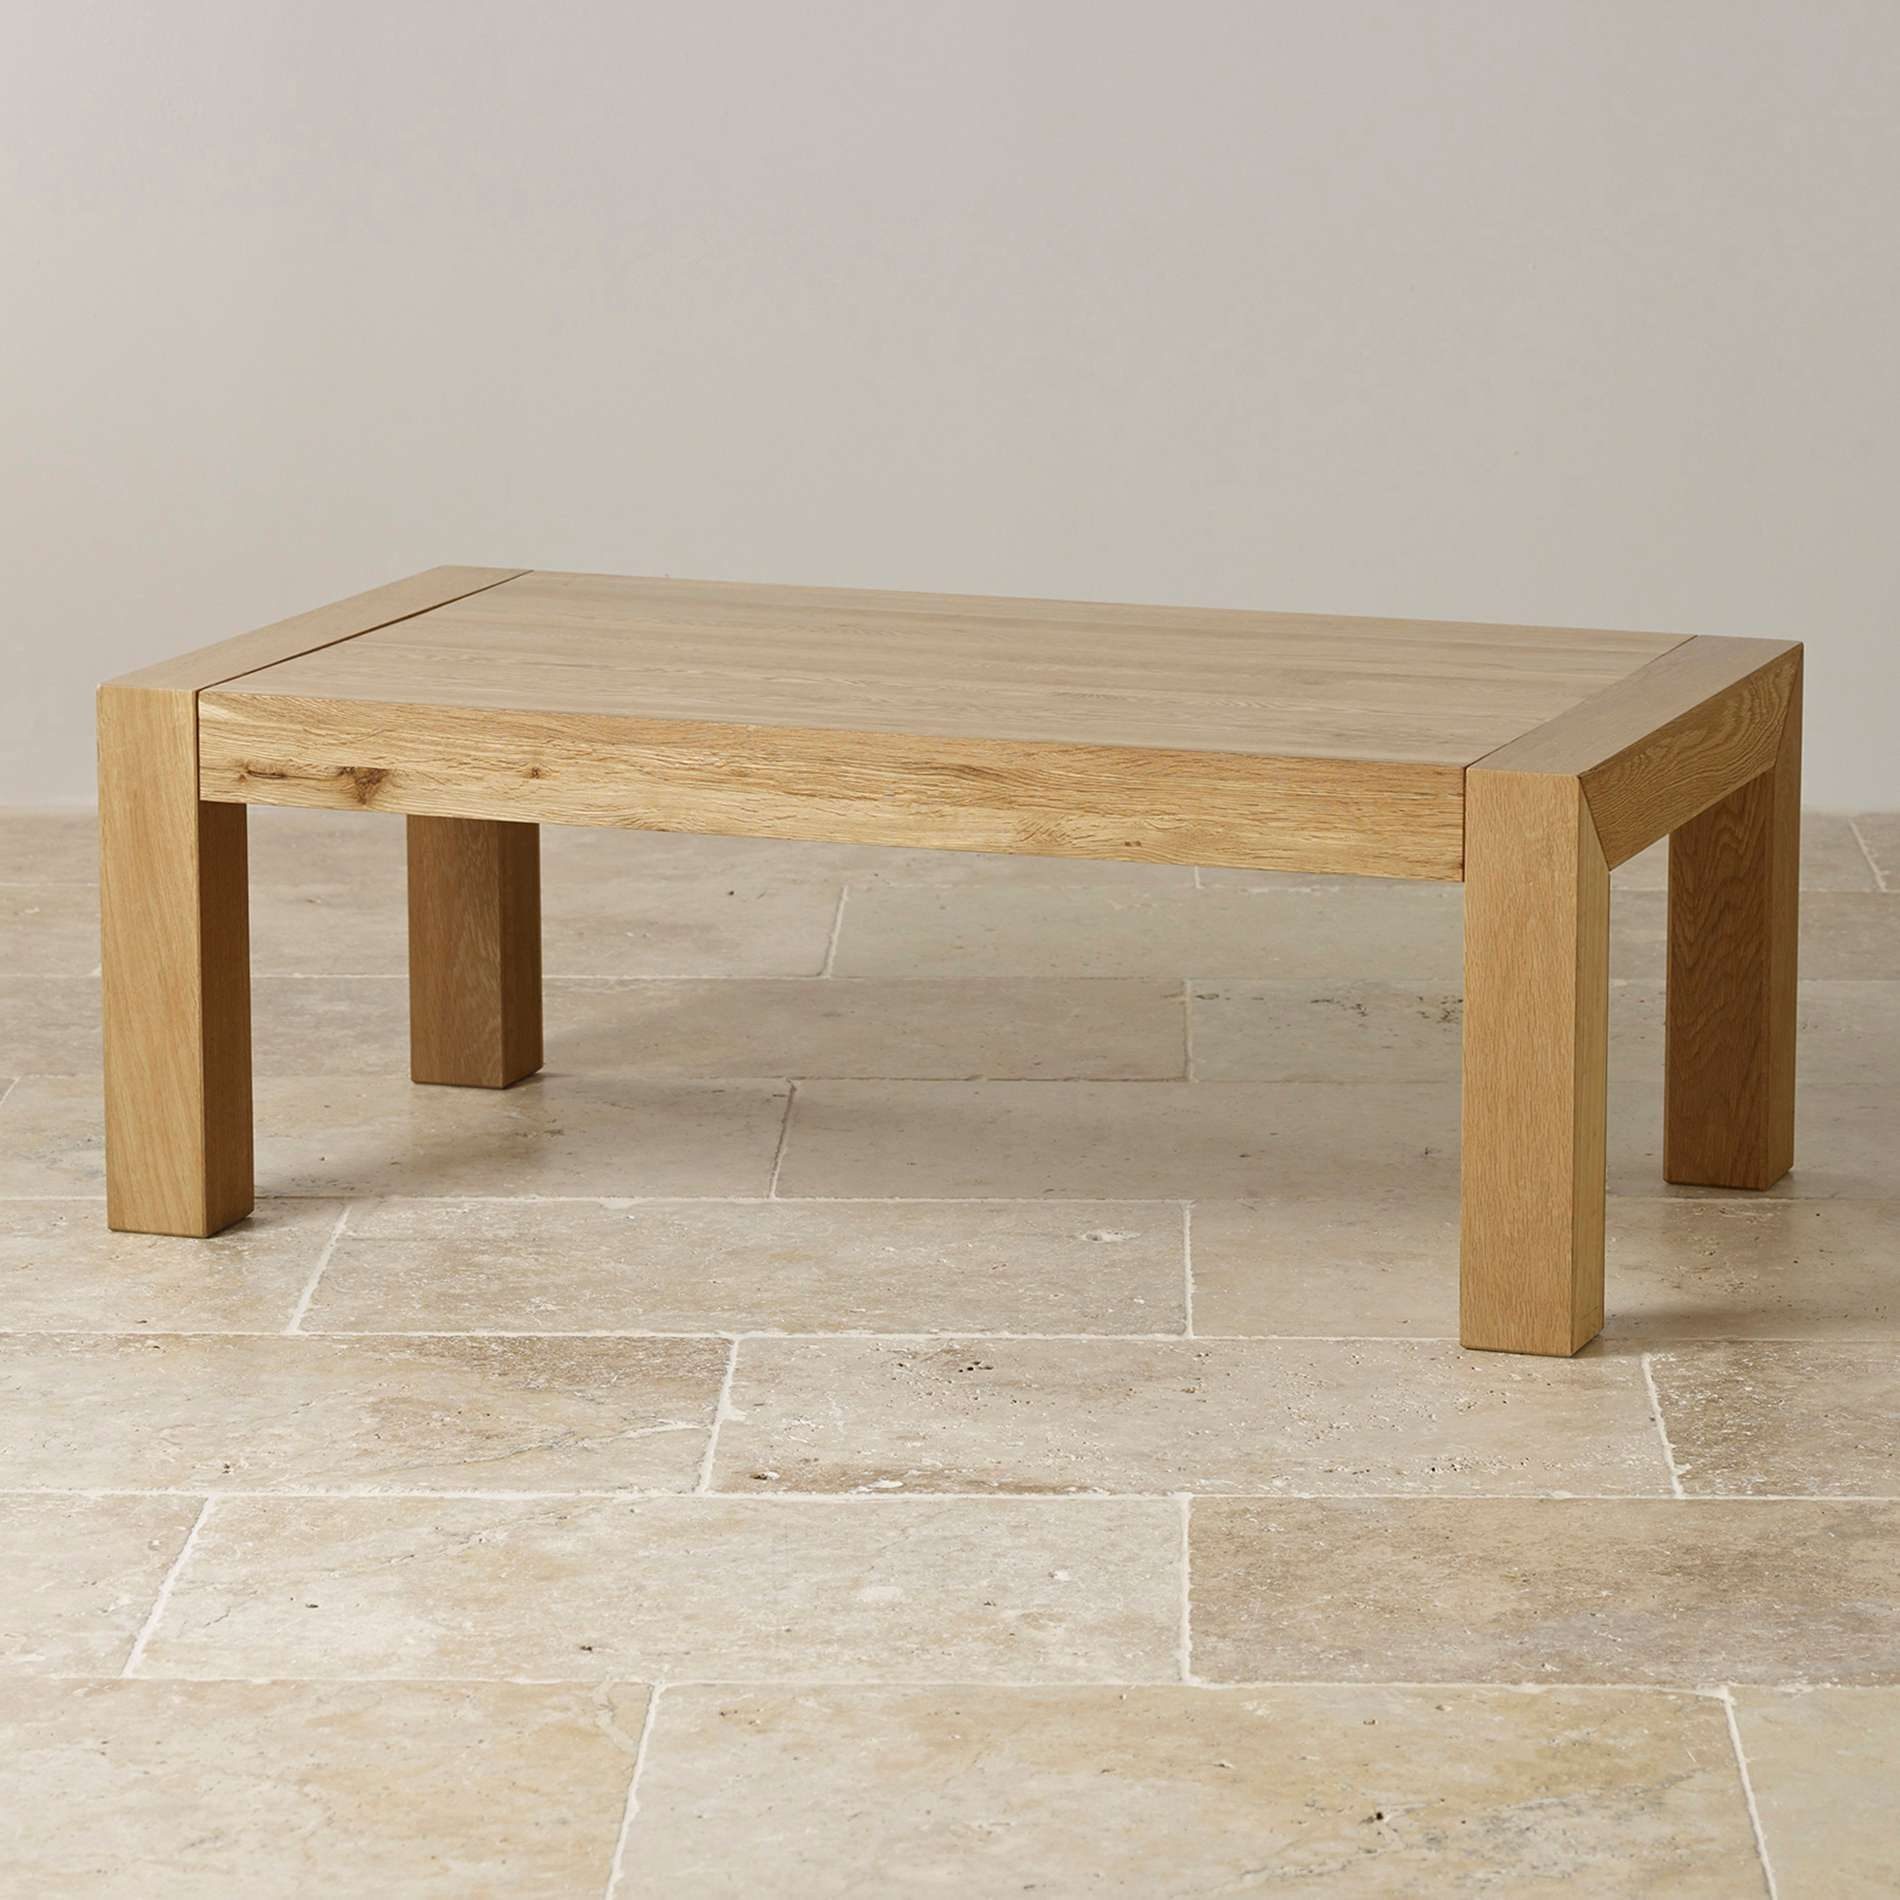 Fashionable Square Oak Coffee Tables In Coffee Table : Wonderful Solid Wood Coffee Table With Drawers (View 9 of 20)